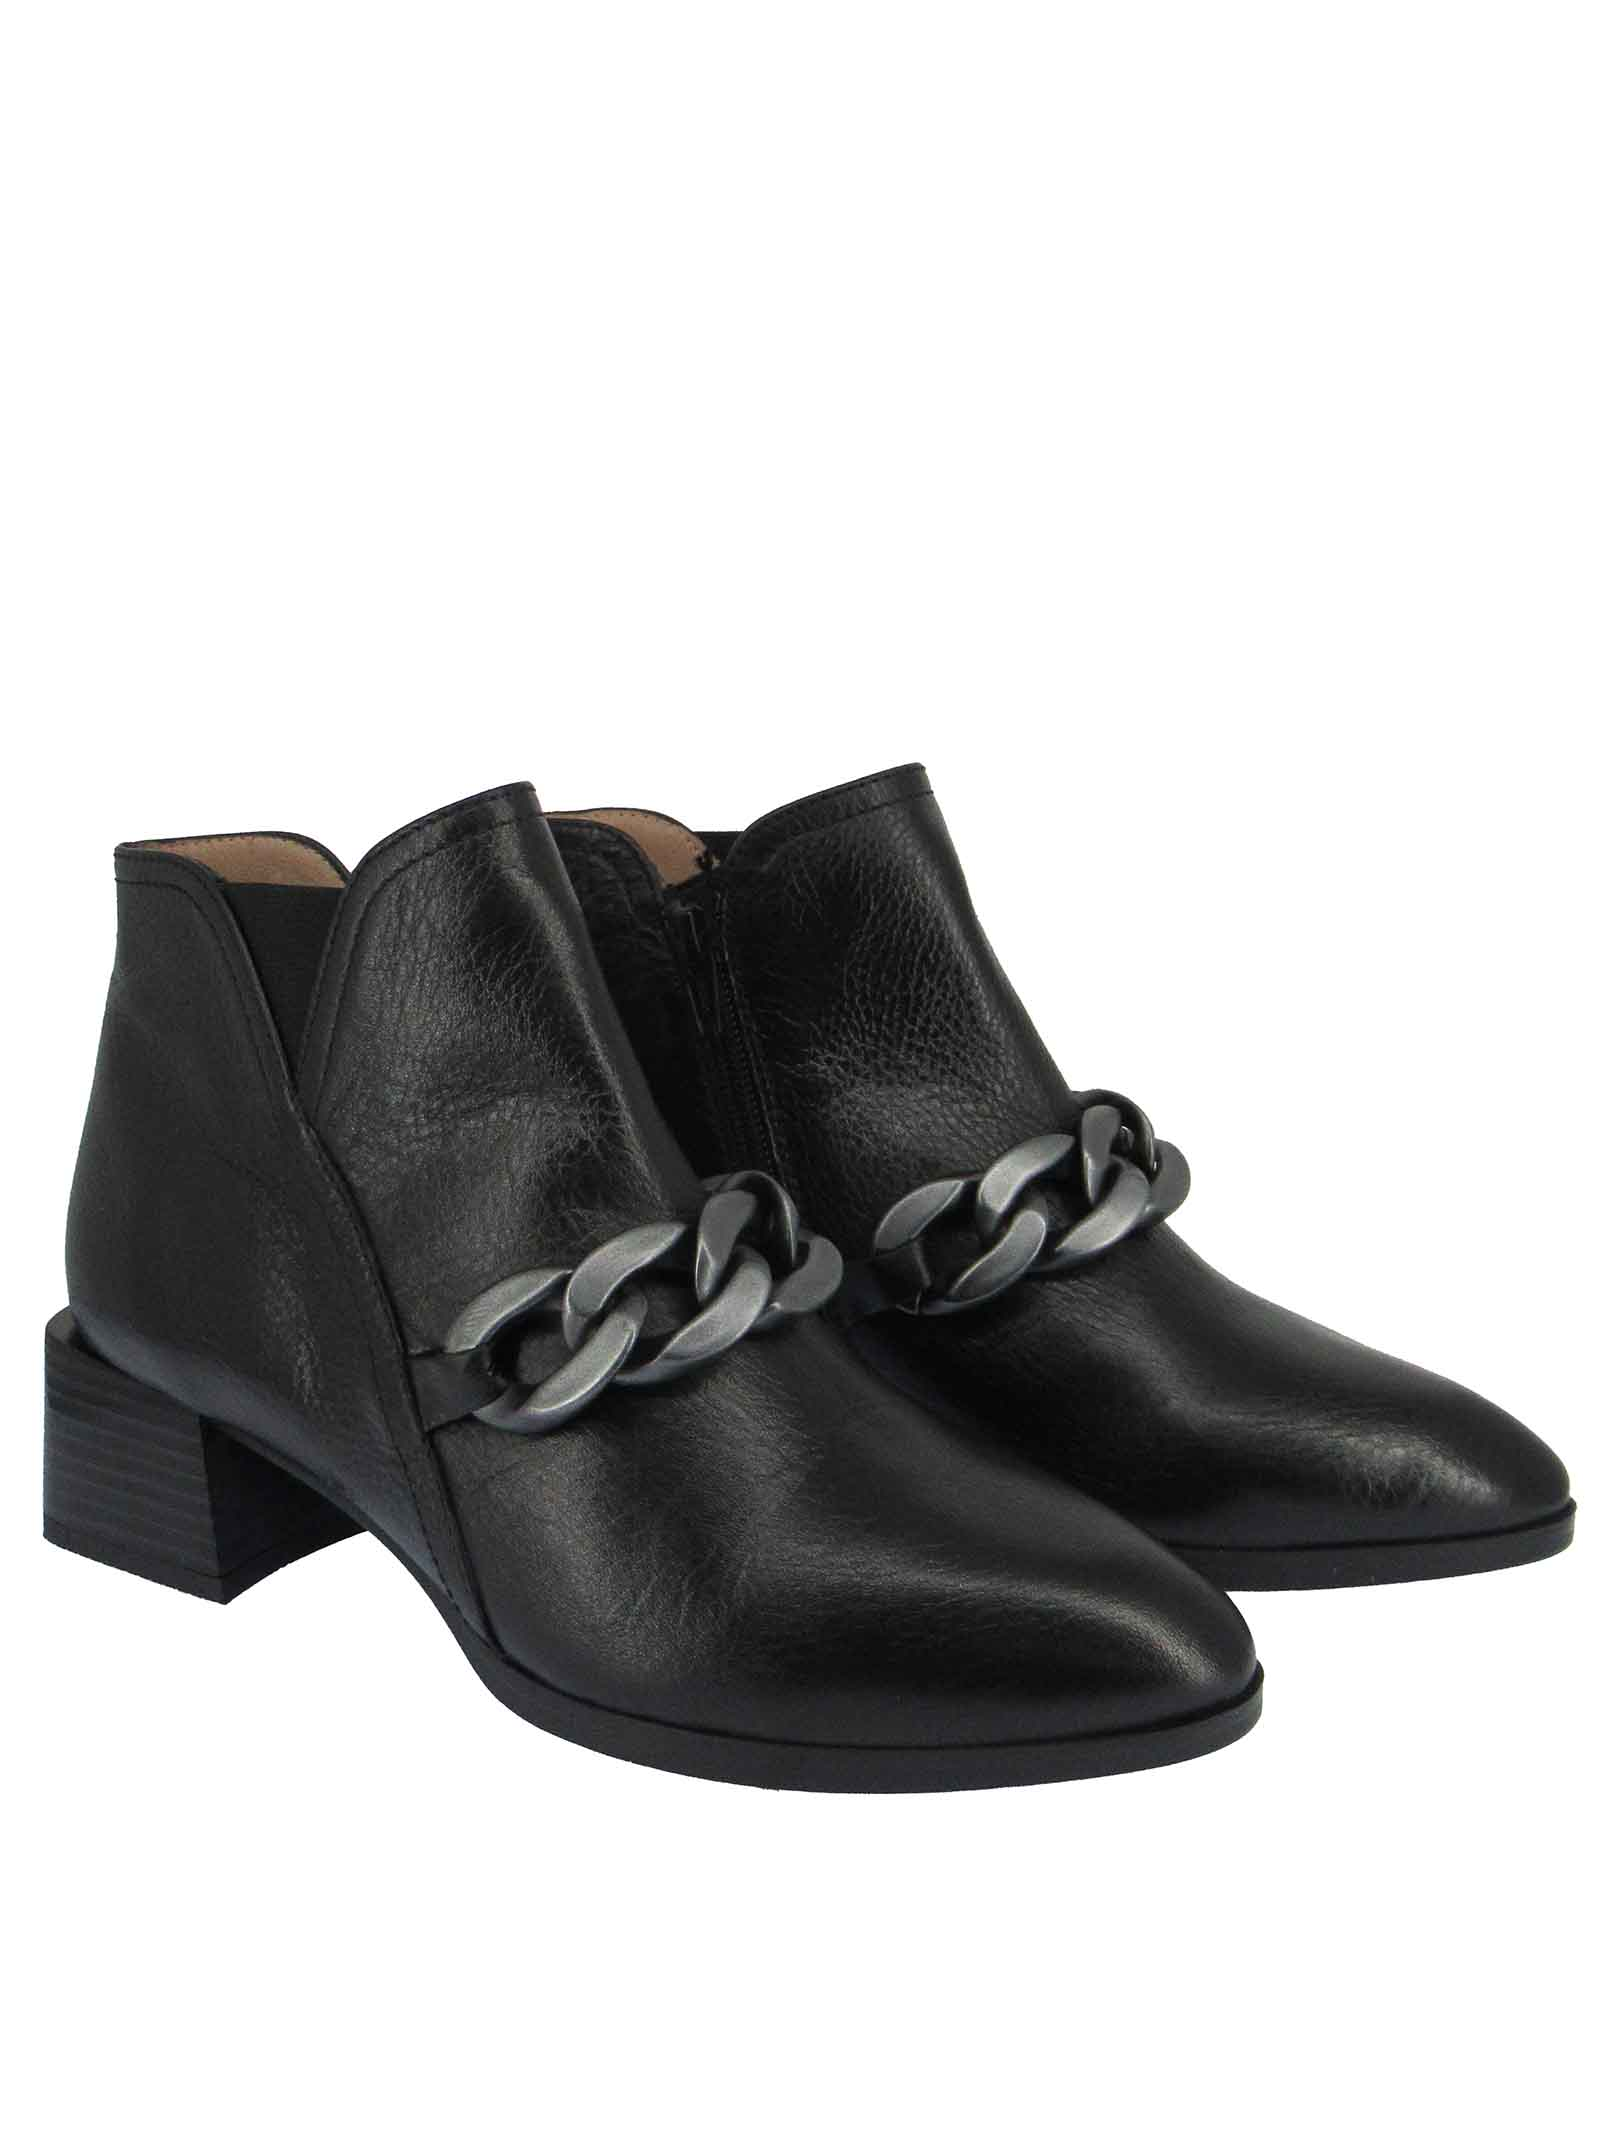 Women's Shoes Ankle Boots Alpes in Black Leather with Brunished Chain and Matching Leather Heel Hispanitas | Ankle Boots | HI211680001